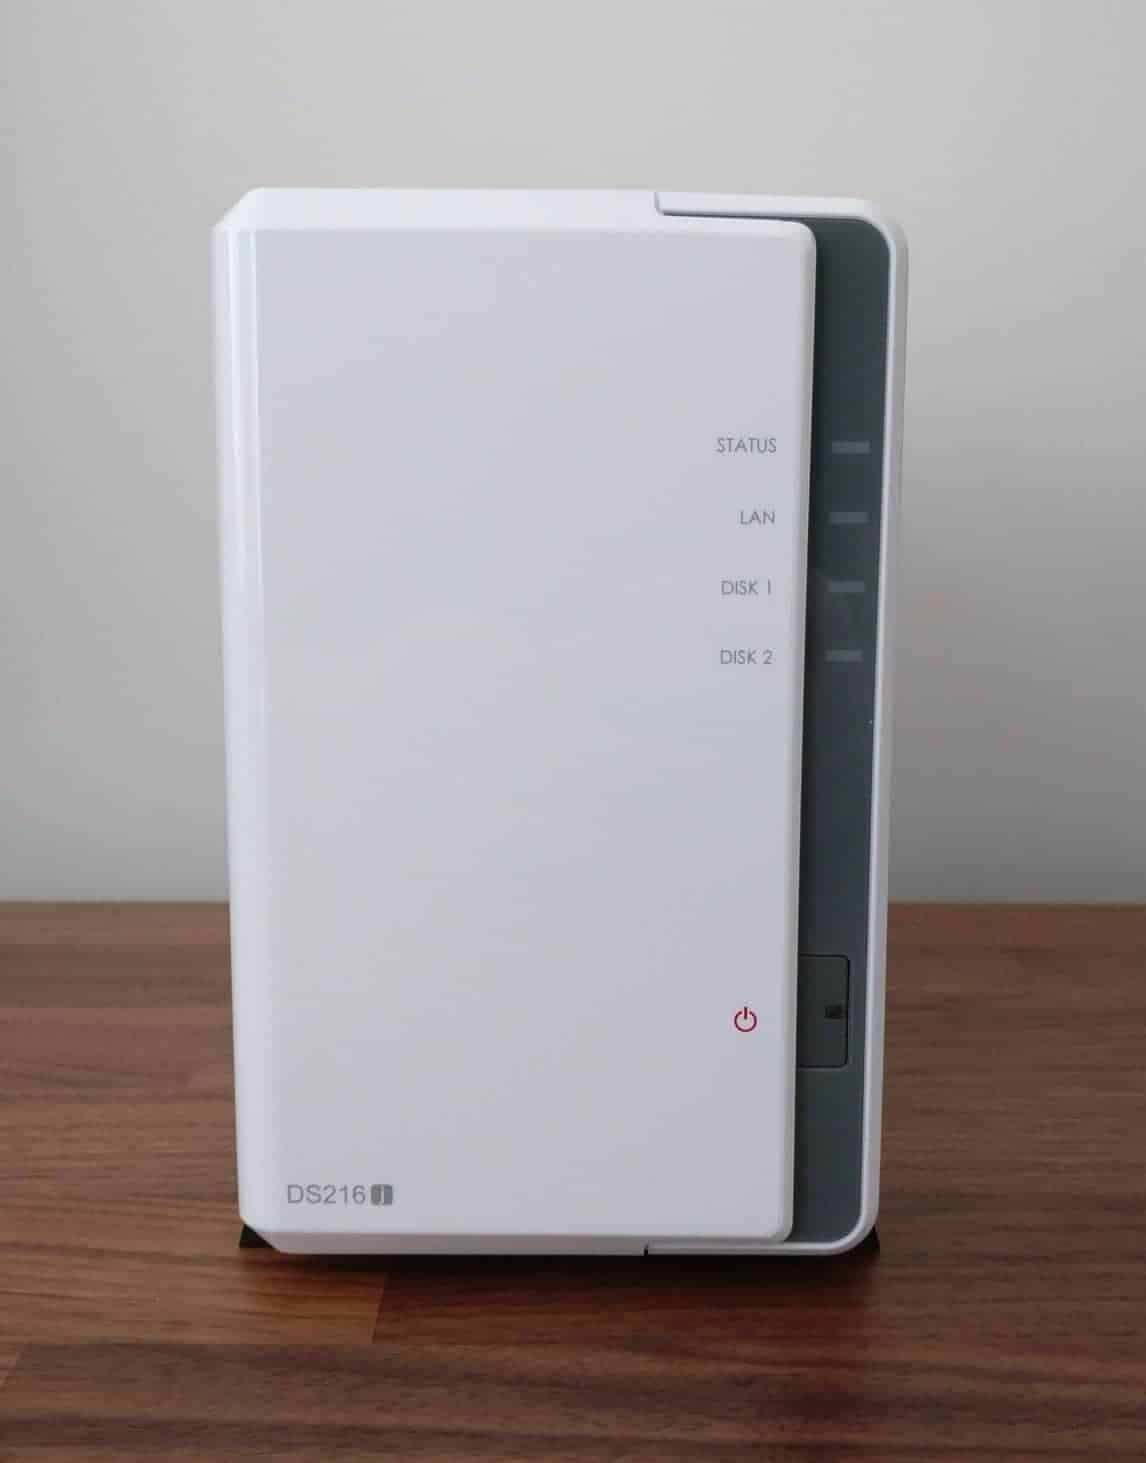 Synology-DS216J-NAS-Photos-08 Synology DS216J 2 Bay NAS Review - The Perfect Backup Solution